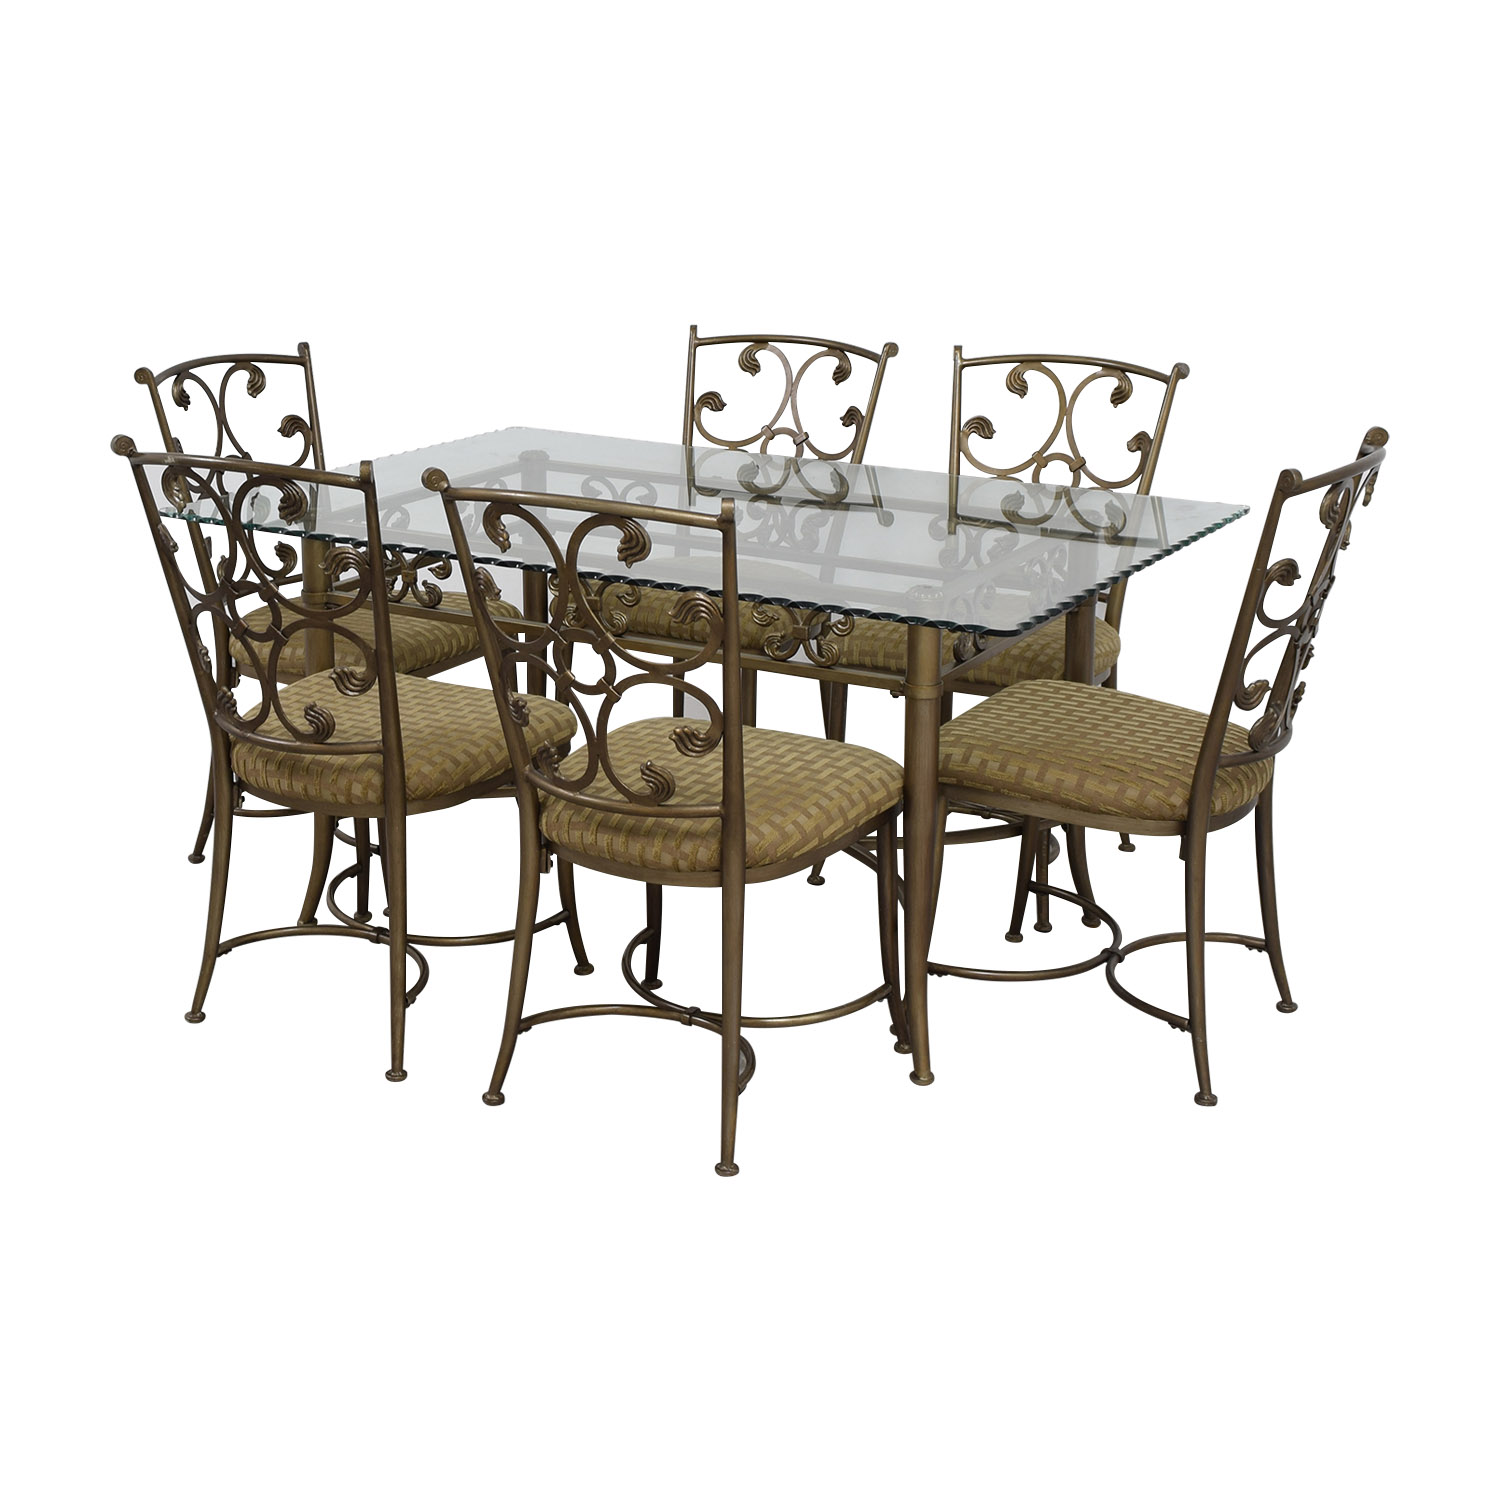 Off glass and gold wrought iron dining set tables